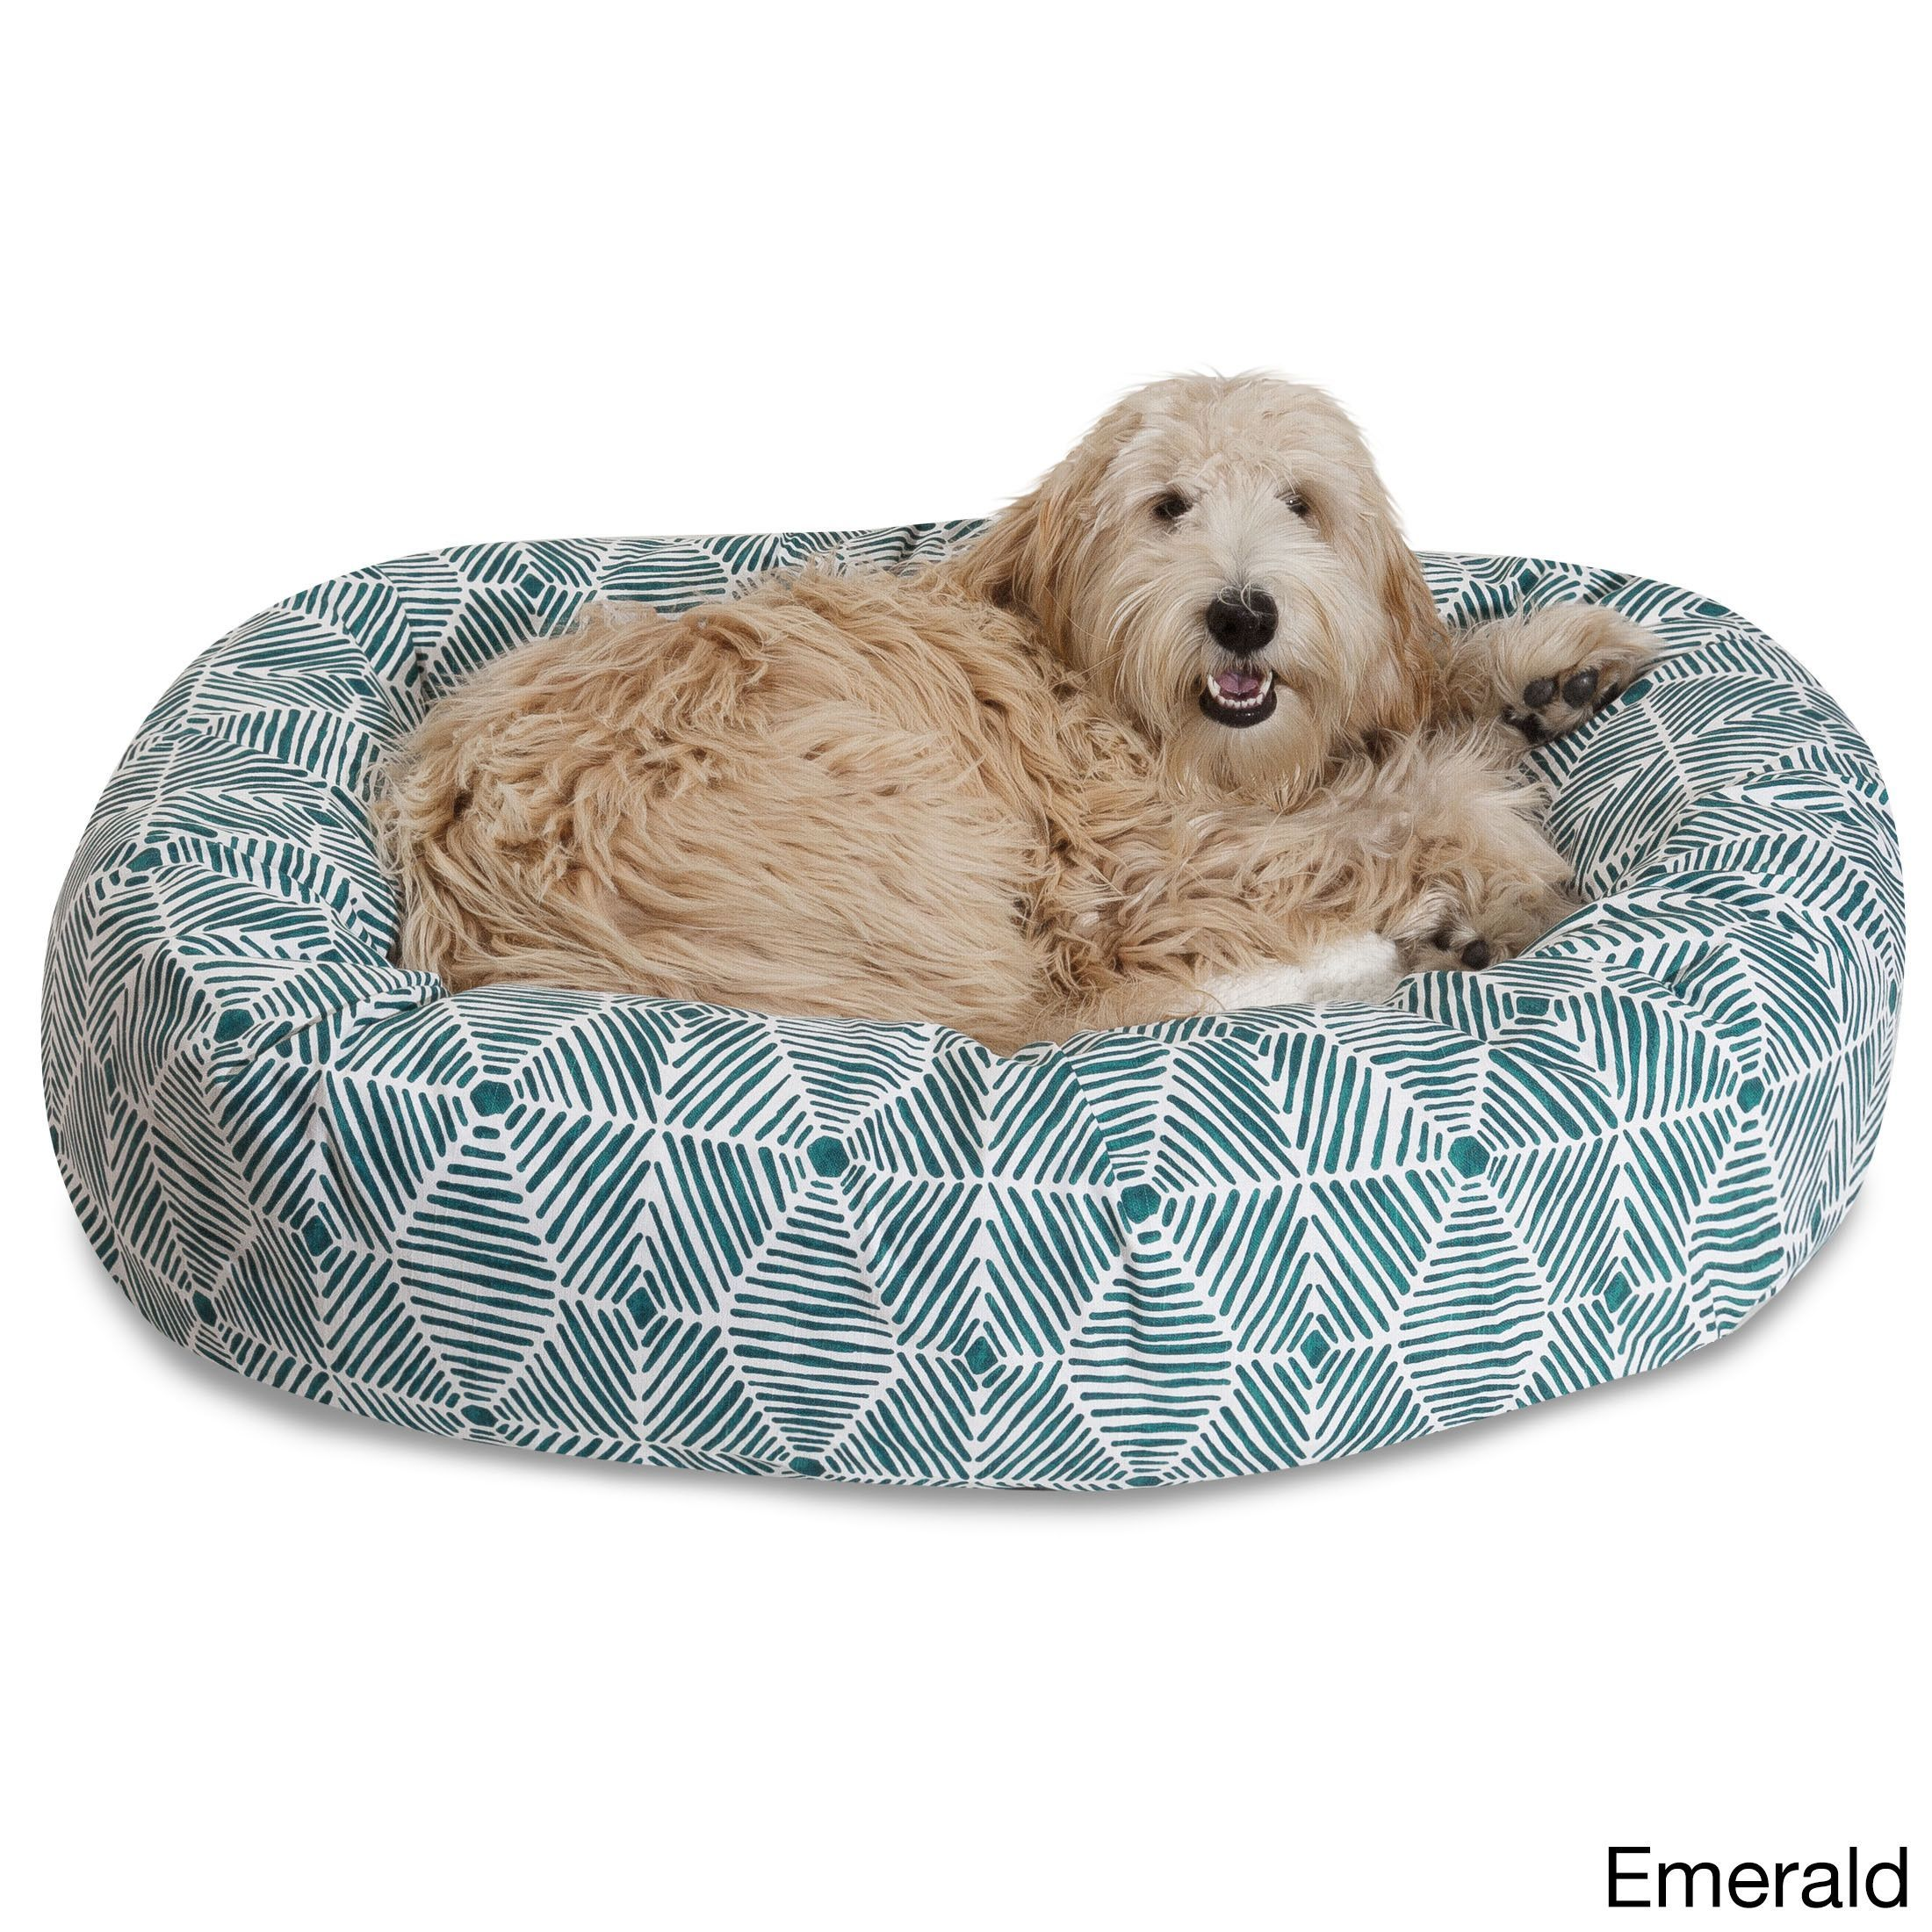 Remarkable Majestic Pet Charlie Sherpa Bagel Large Extra Large Dog Bed Theyellowbook Wood Chair Design Ideas Theyellowbookinfo